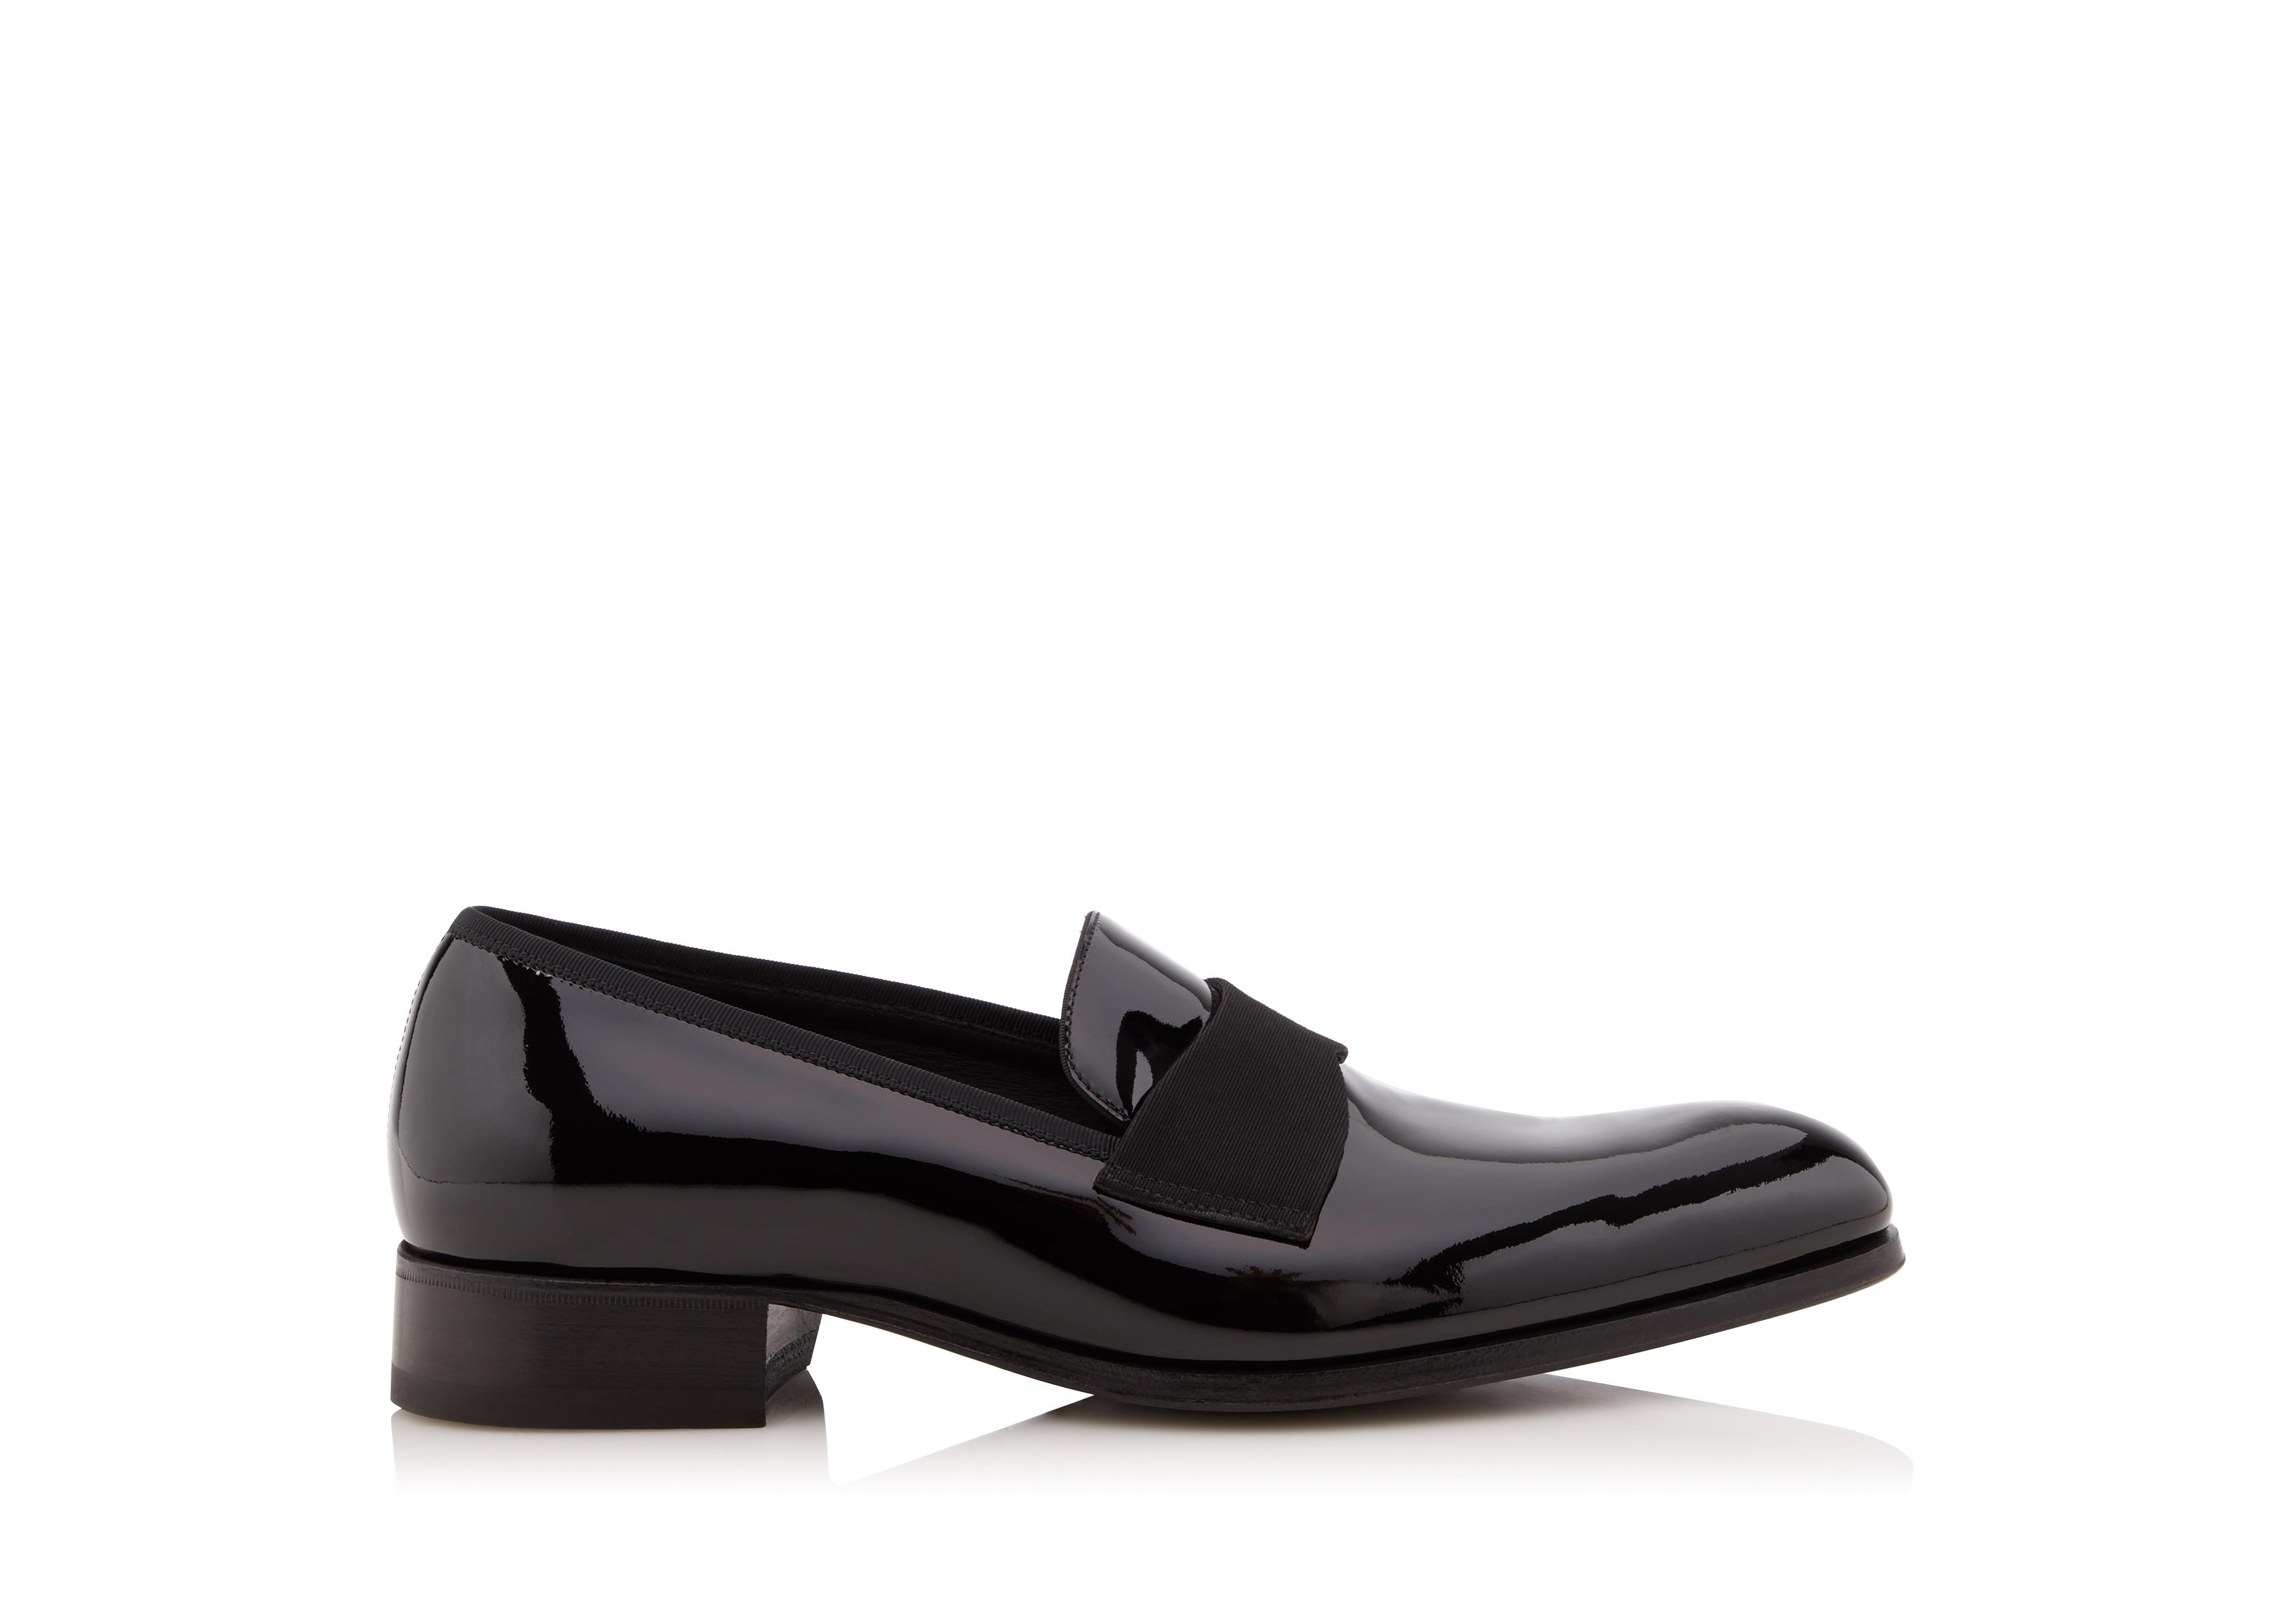 EDGAR PATENT LEATHER EVENING LOAFER A thumbnail